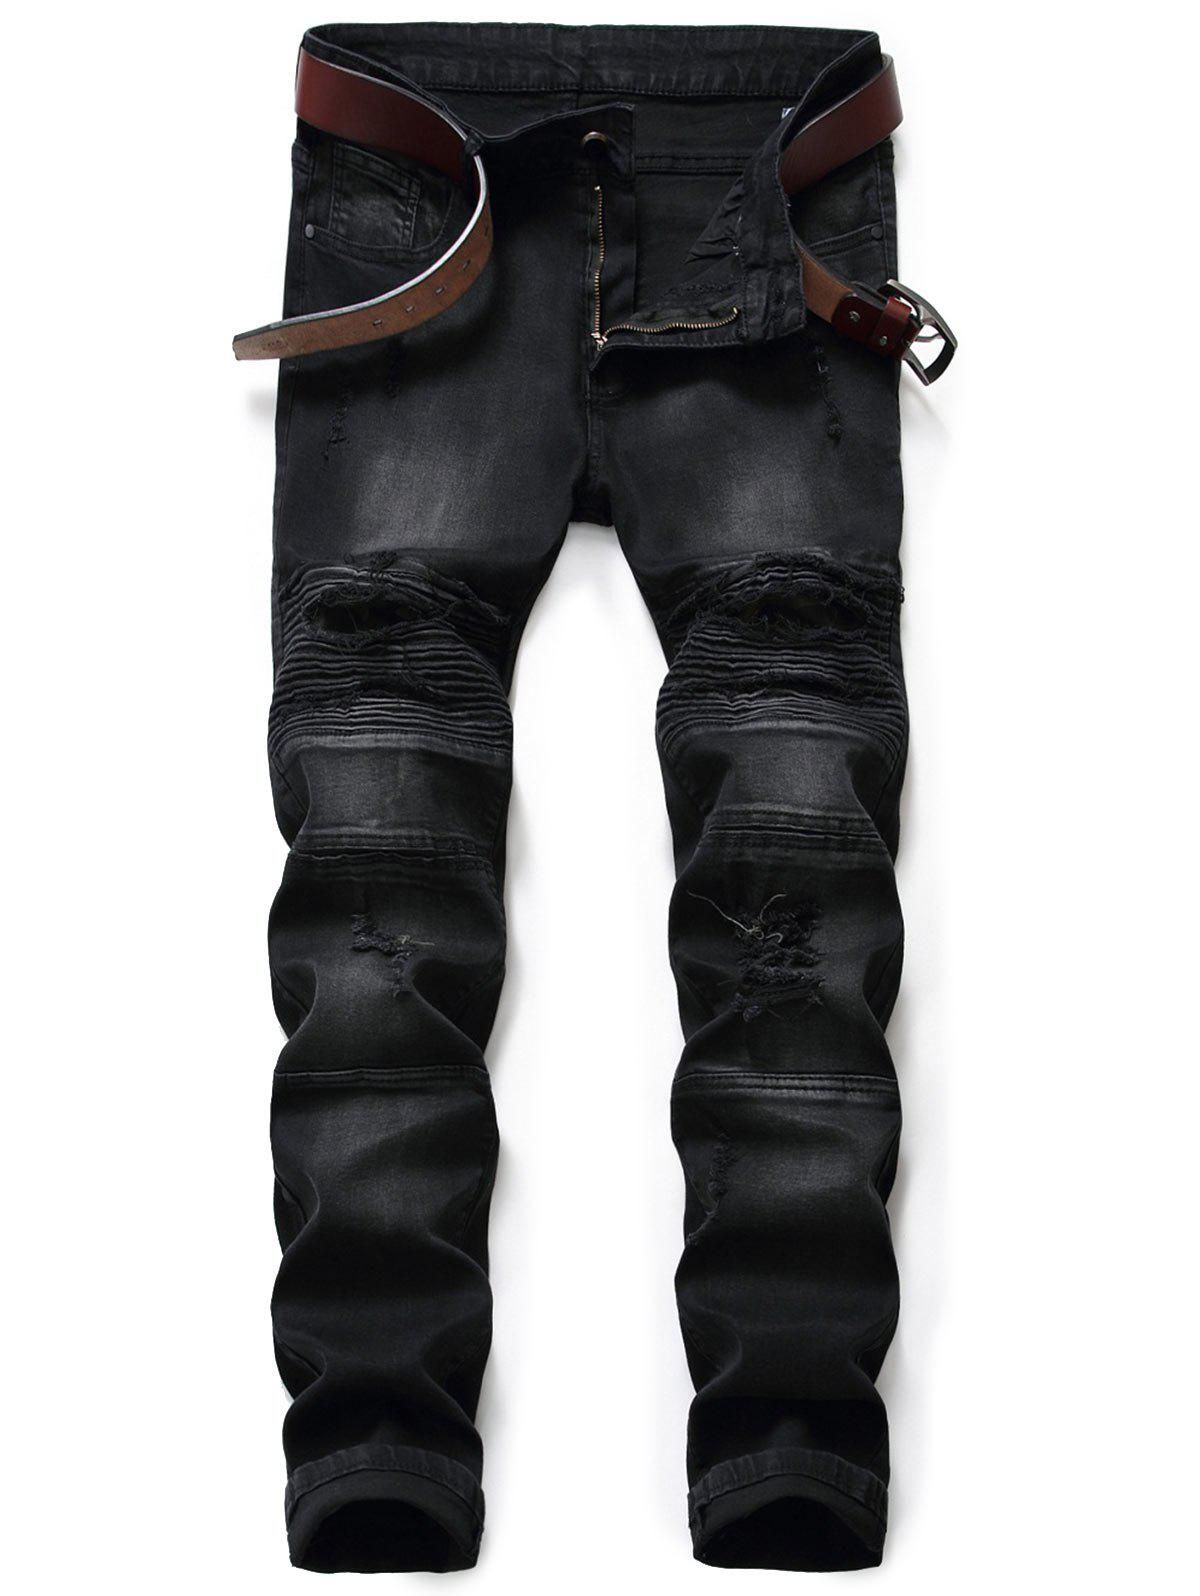 Slim Fit Zip Fly Ripped Biker Jeans fashion men s ripped skinny biker jeans destroyed frayed slim fit denim pants